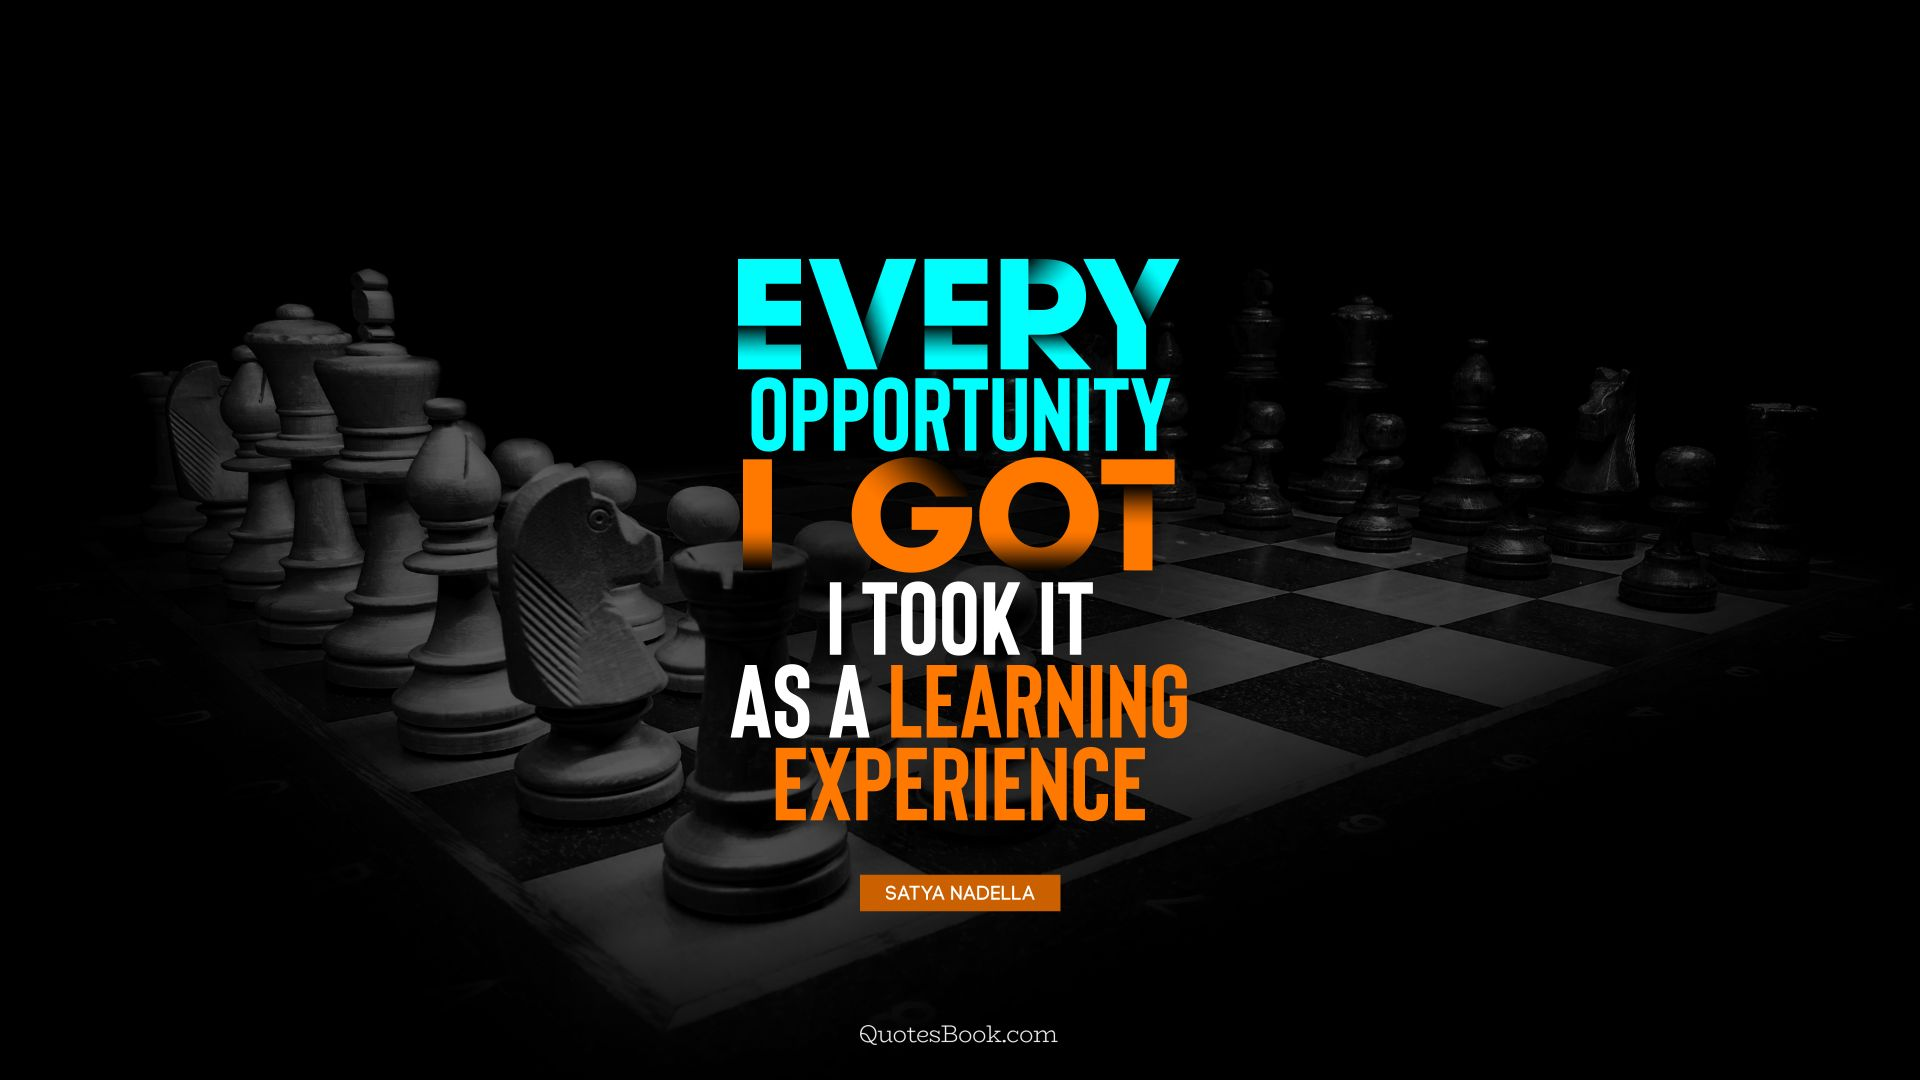 Every opportunity I got, I took it as a learning experience. - Quote by Satya Nadella